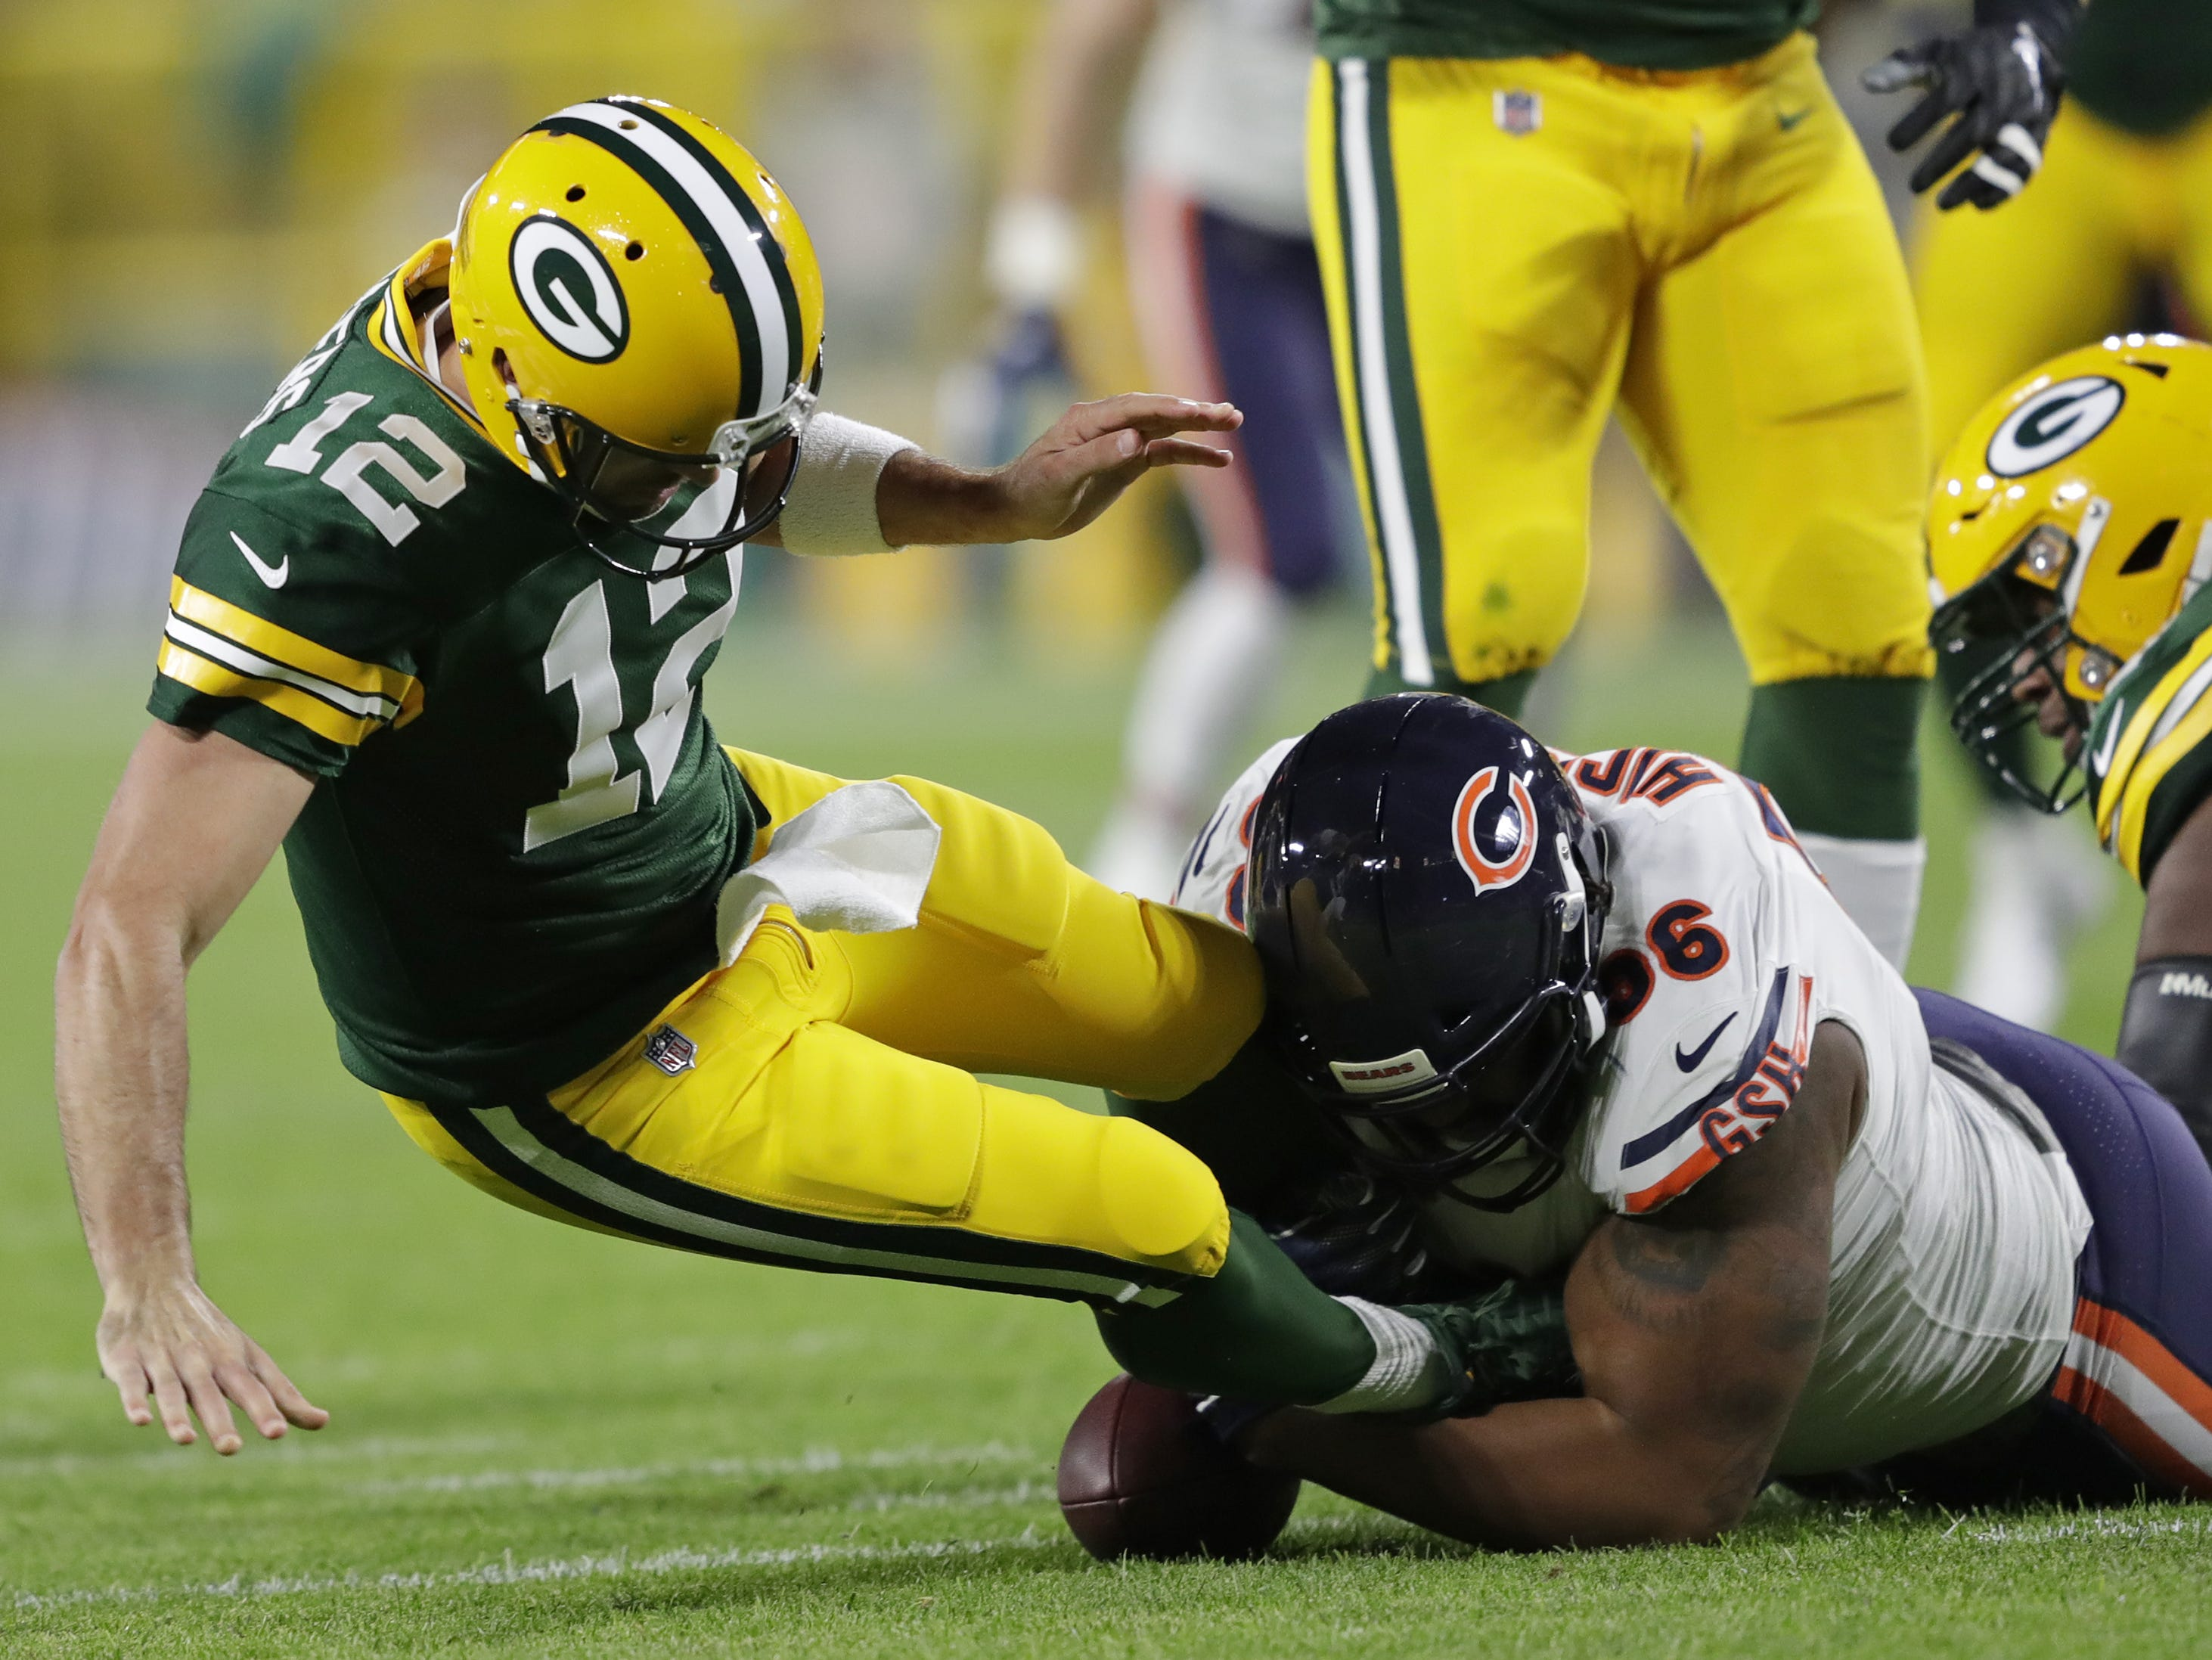 Green Bay Packers quarterback Aaron Rodgers (12) is sacked by Chicago Bears defensive end Akiem Hicks (96) in the first quarter Sunday, Sept. 9, 2018, at Lambeau Field in Green Bay, Wis.